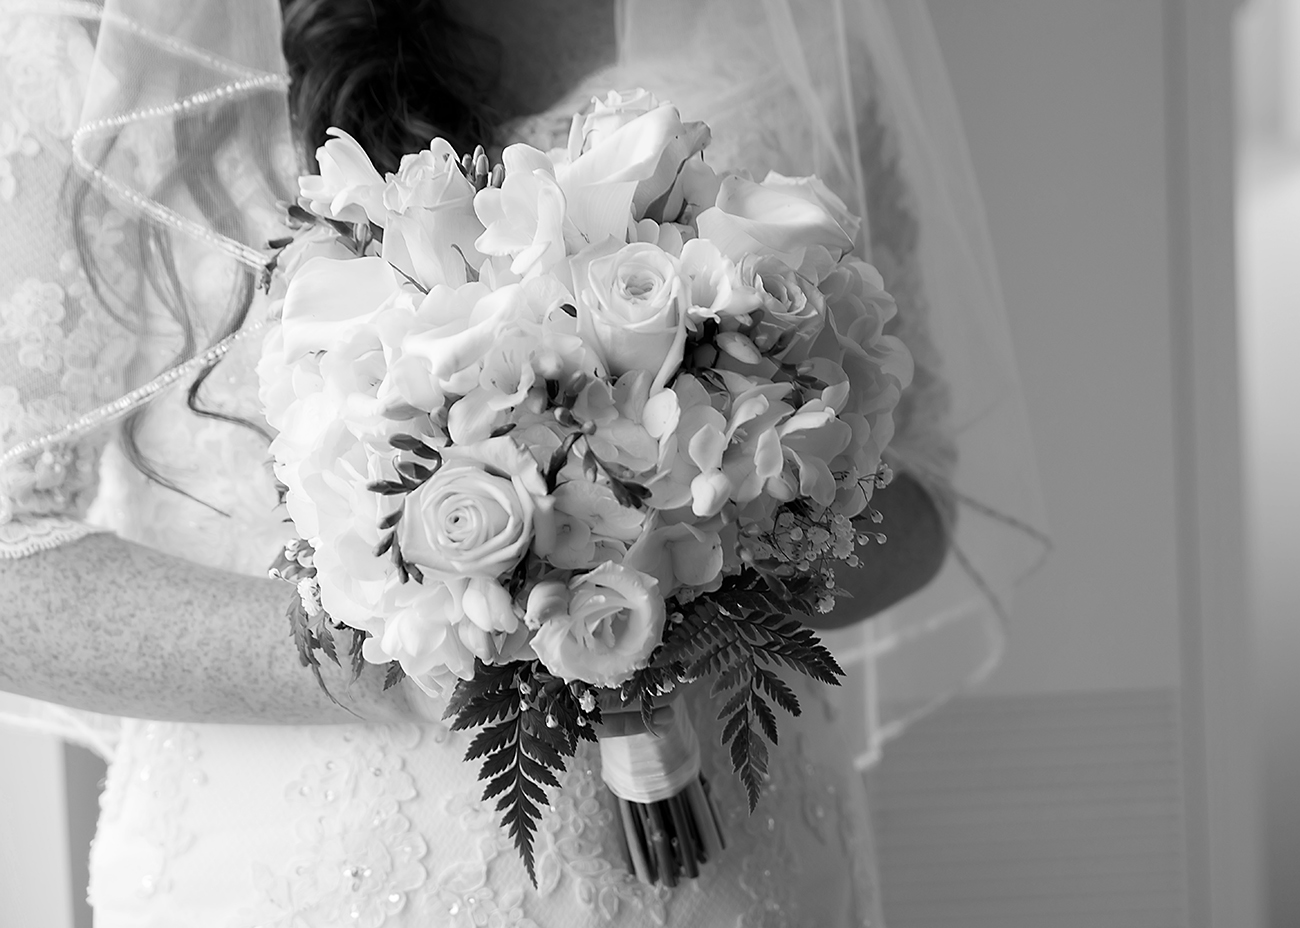 A bride's bouquet of roses at a wedding at the Downtown Mariott in Raleigh, NC